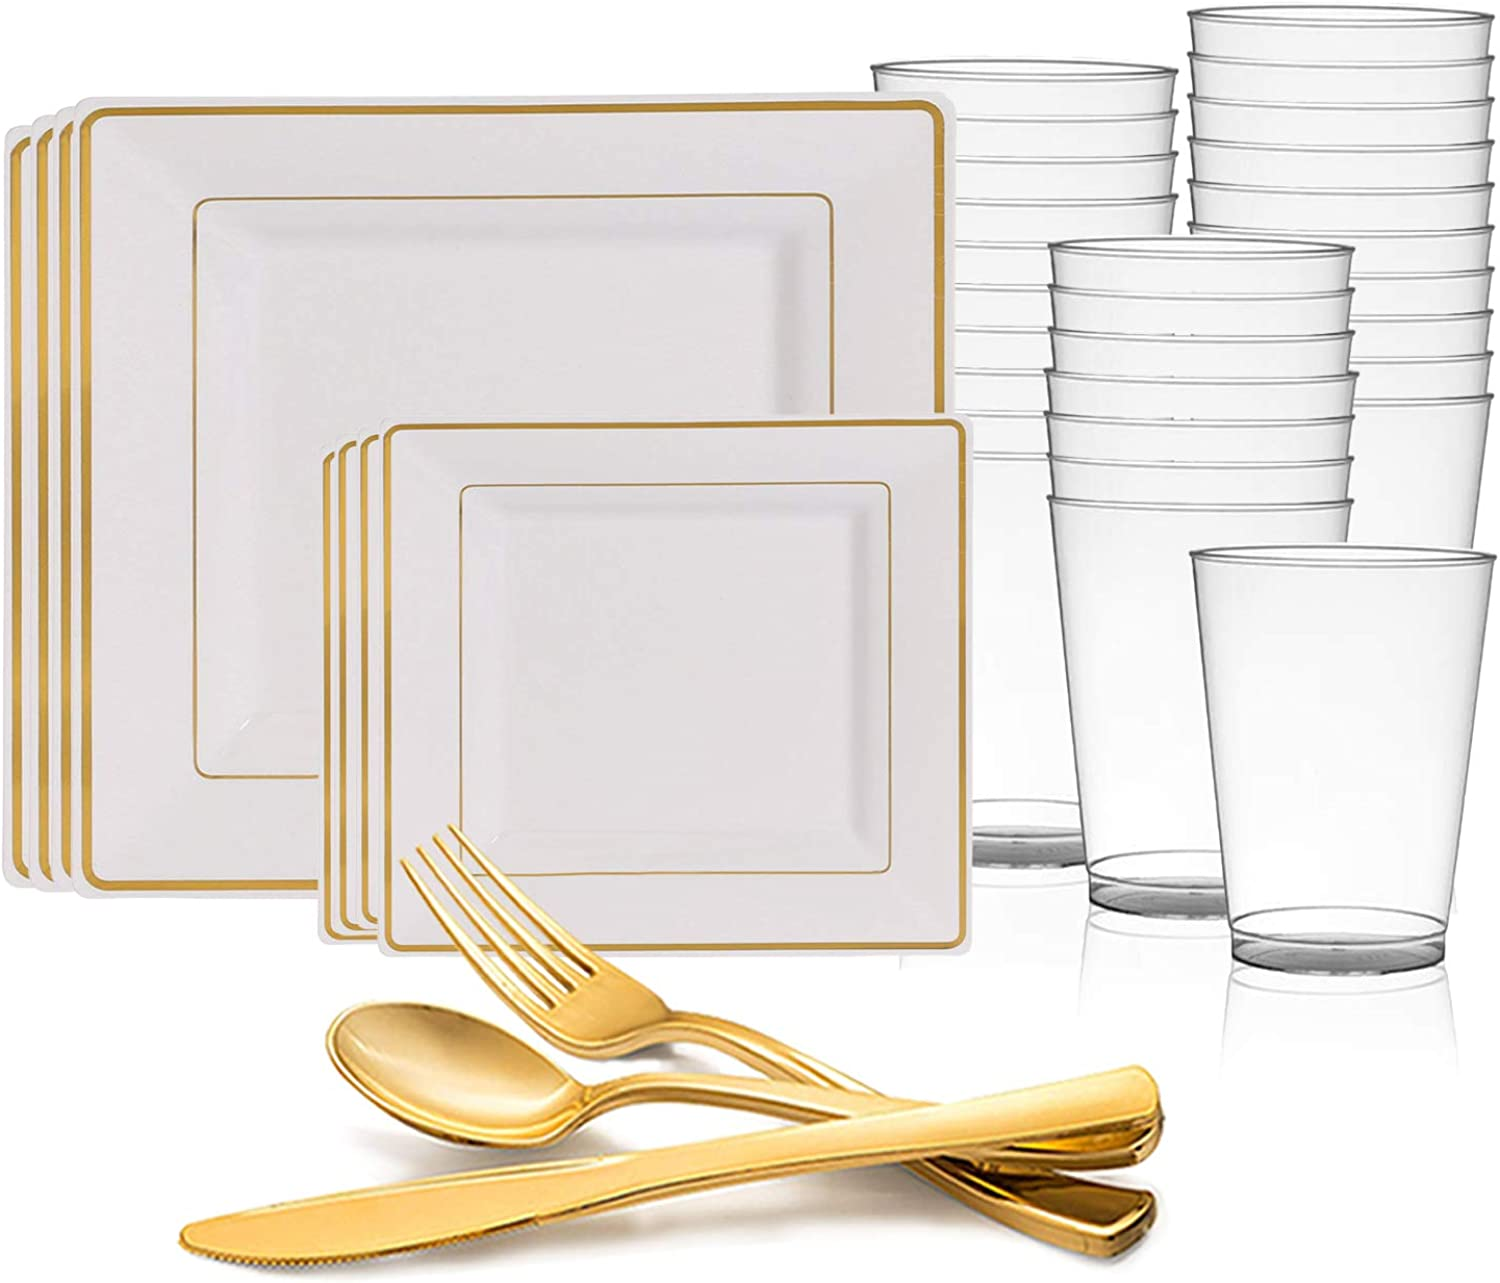 Disposable Plastic Dinnerware Set for 60 Guests - Includes Fancy Square White & gold Dinner Plates, Dessert Salad Plates, Silverware Set Cutlery & Cups For Wedding, Birthday Party & Other Occasions